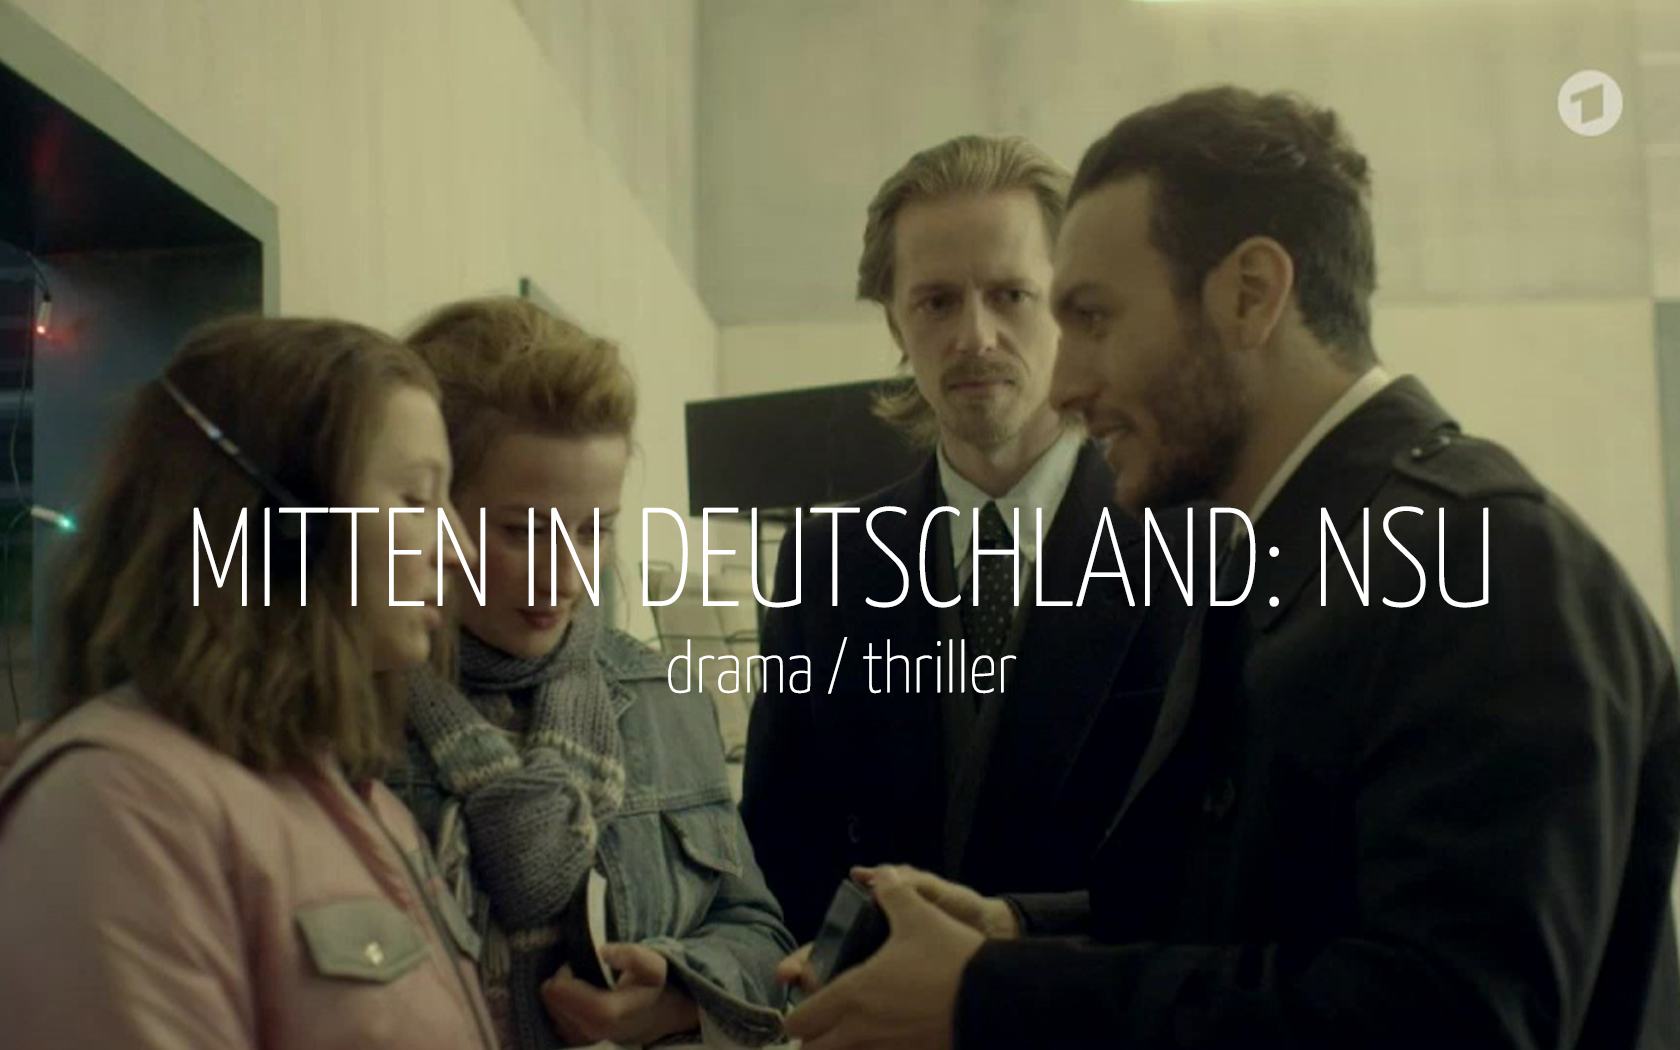 Scandinavian actor Fredrik Wagner as scientologist in drama film Mitten in Deutchland: NSU with Anna Maria Mühe, Nina Gummich and Angus McGruther